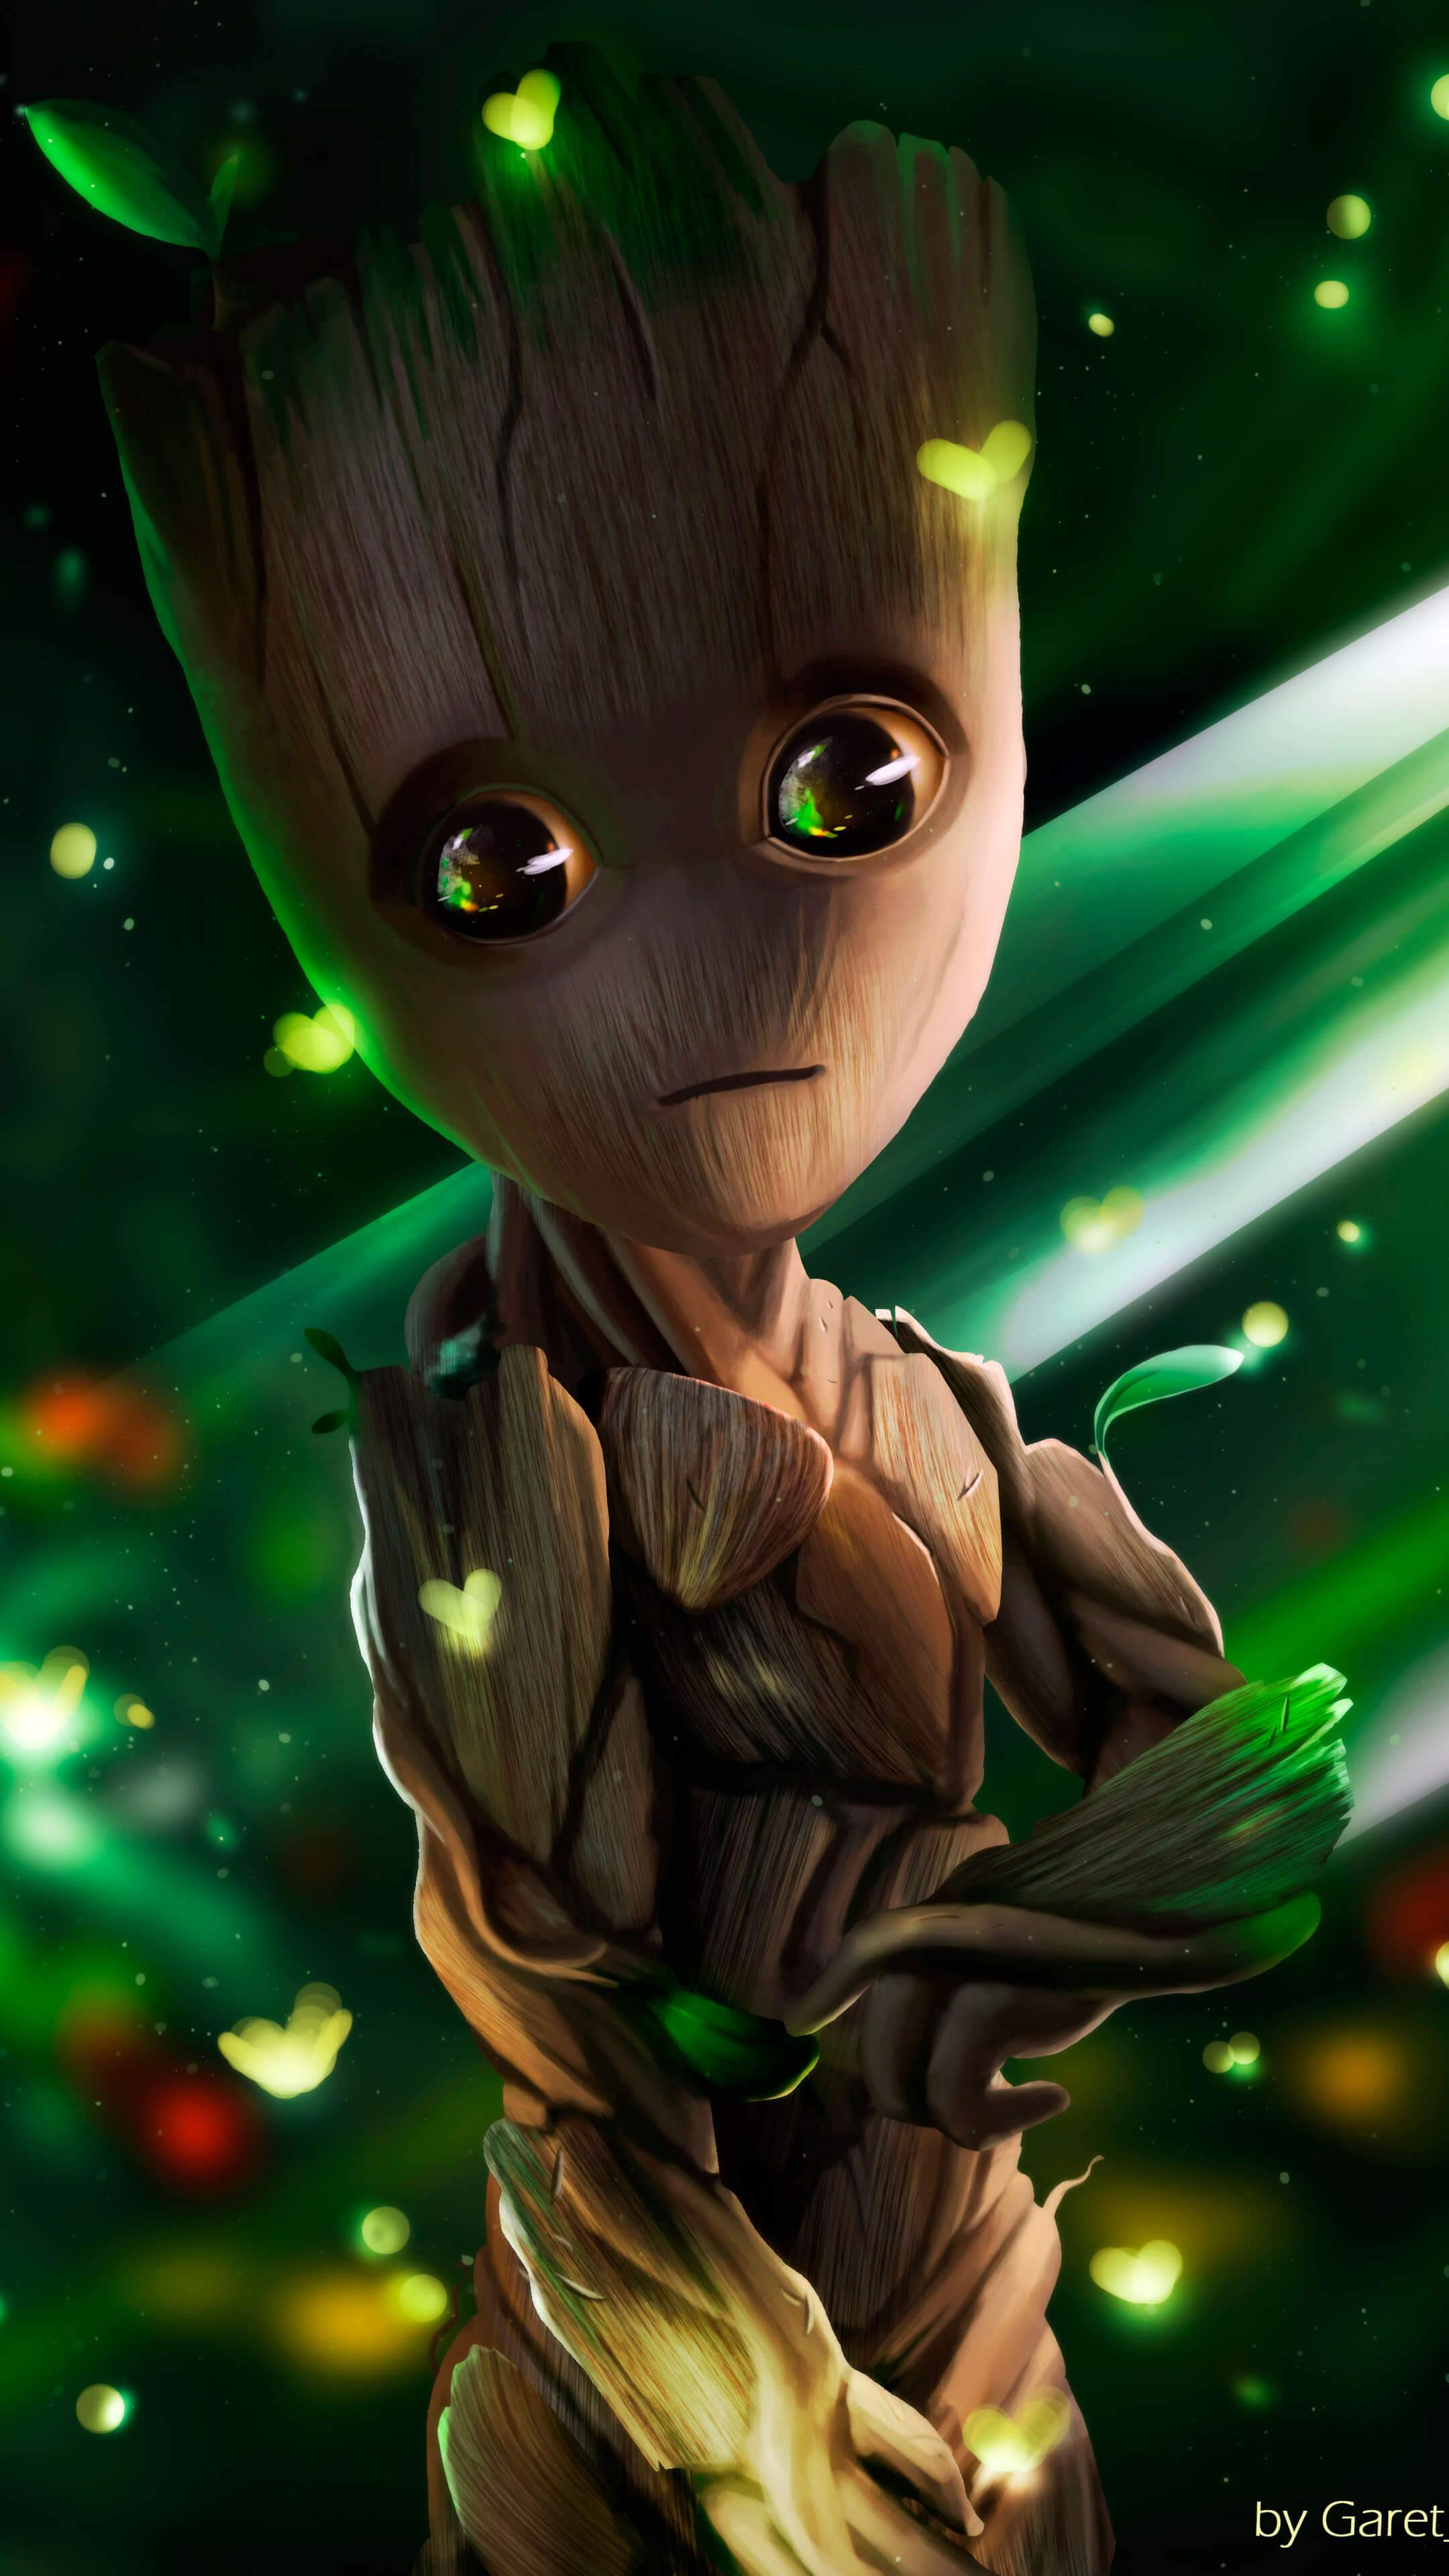 Cute Iron Man Wallpapers Baby Groot Iphone Wallpaper Iphone Wallpapers